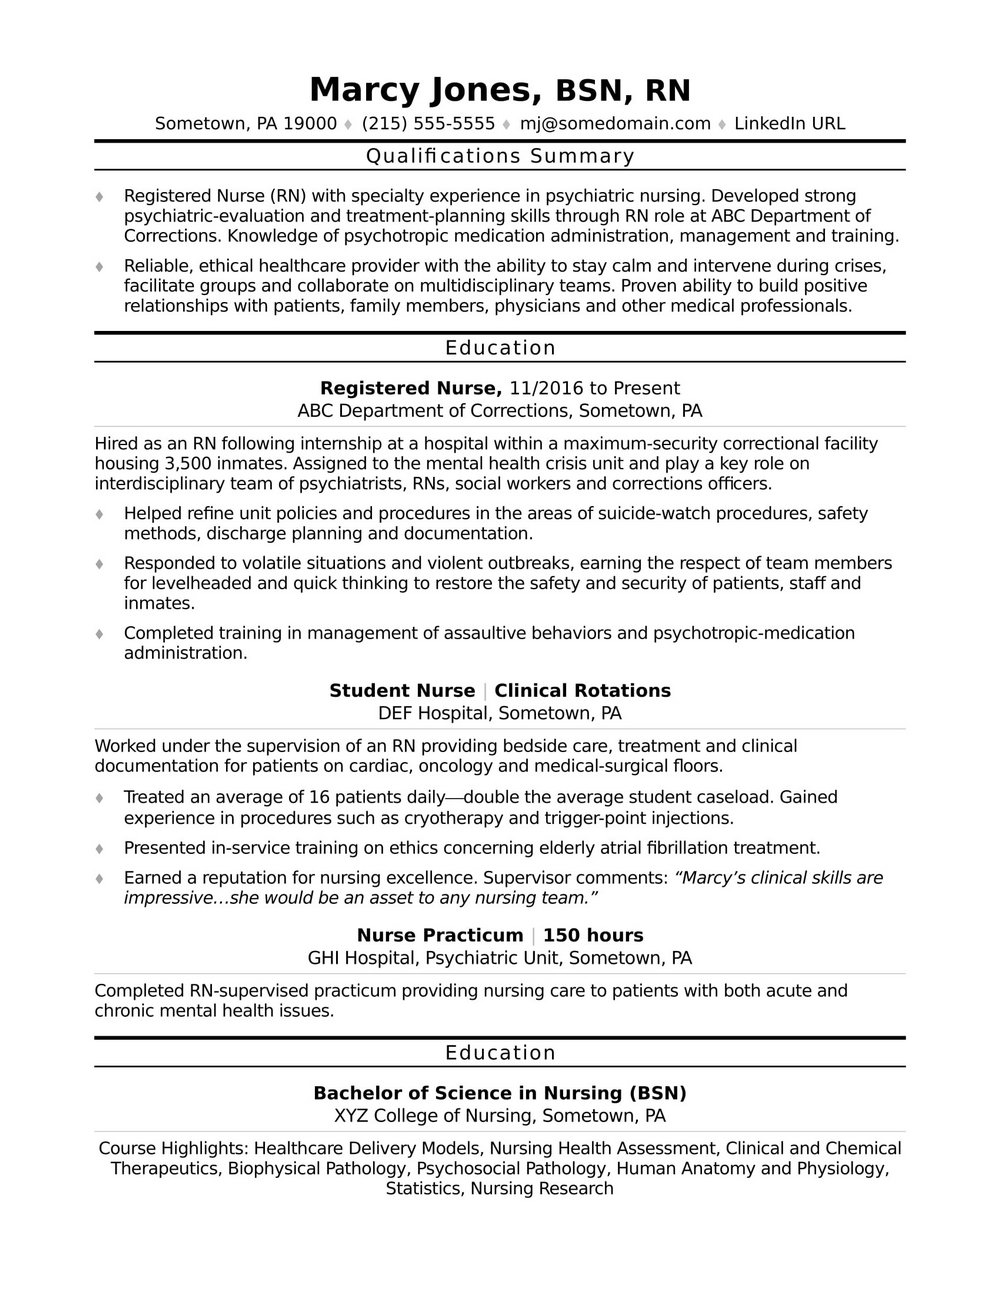 Registered Nurse Resume Samples